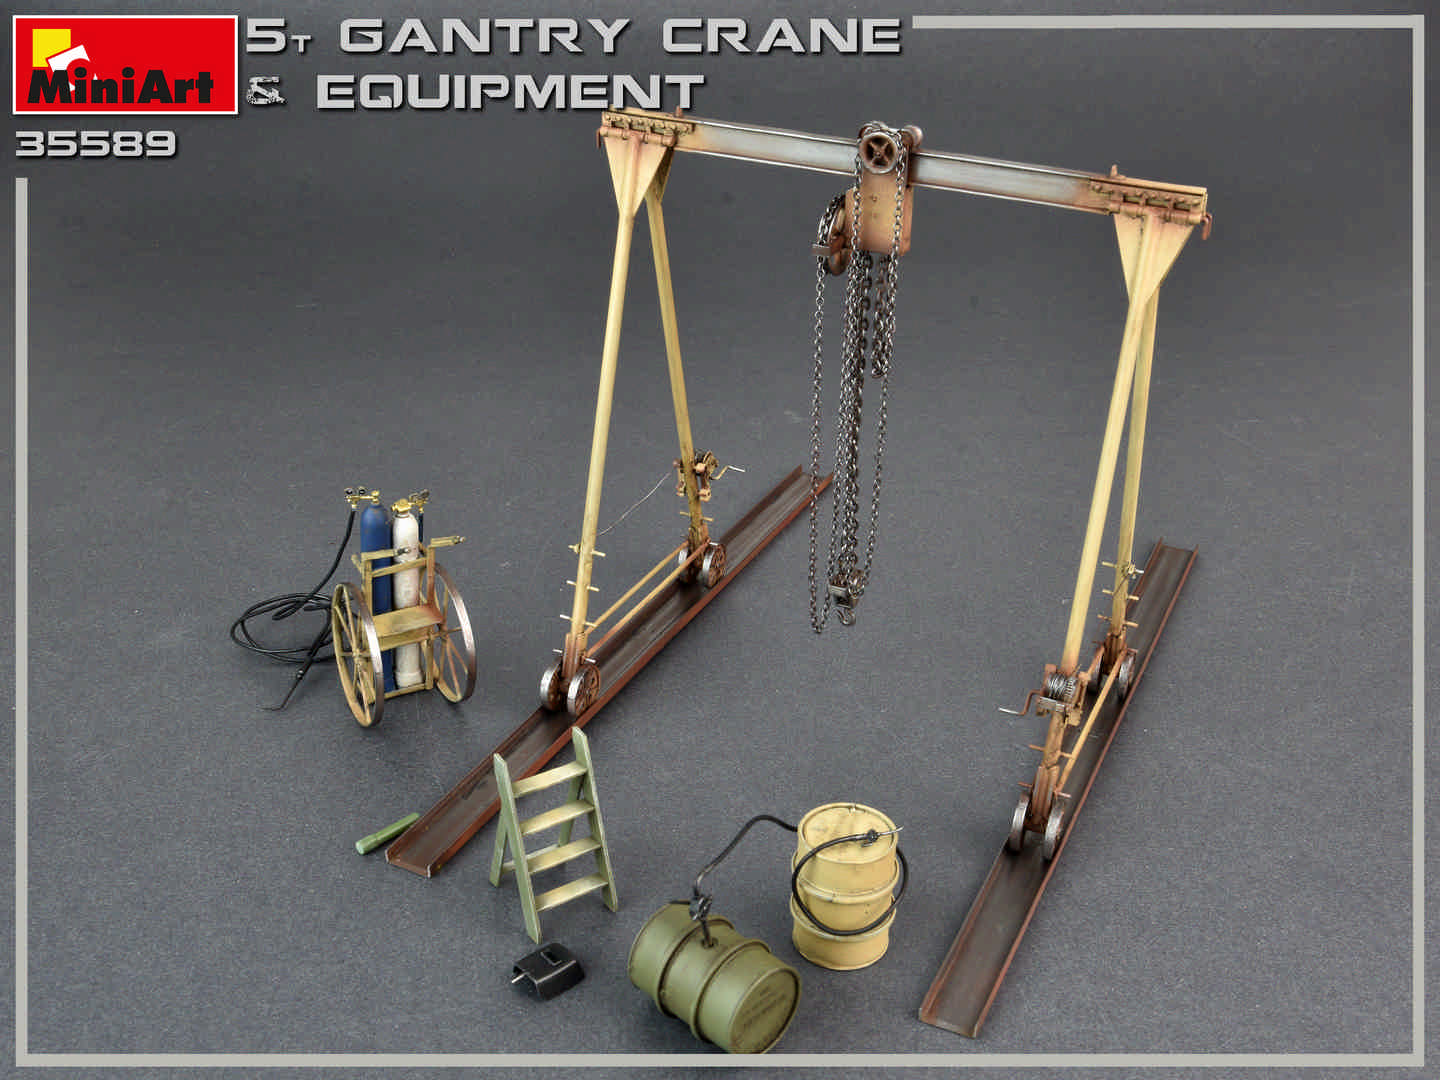 Miniart 35589 5 Ton Gantry Crane Amp Equipment